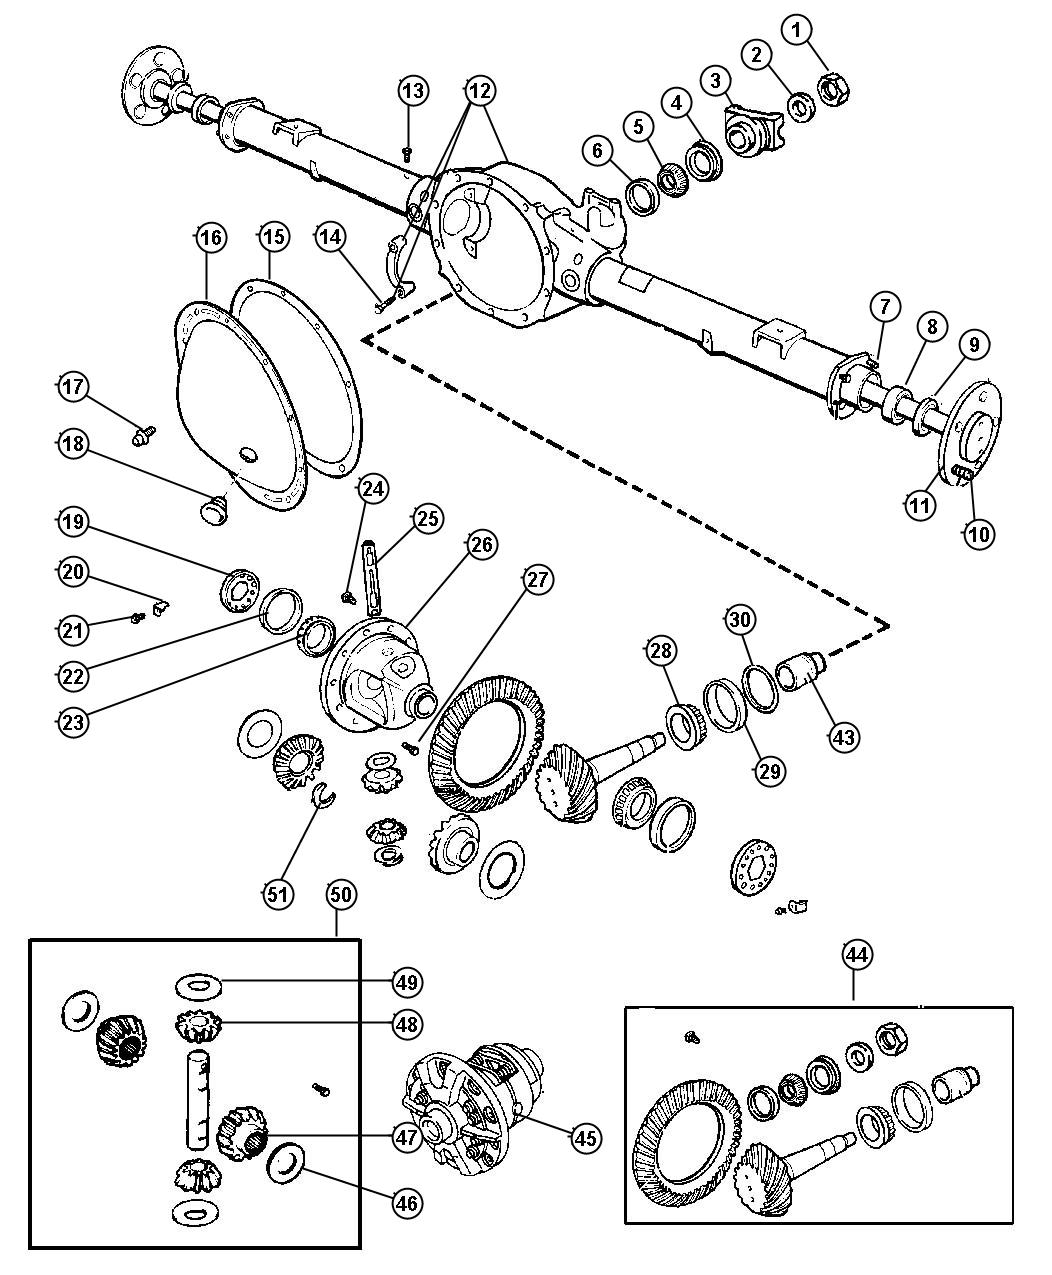 Jeep Cherokee Parts Front Brakes Diagram